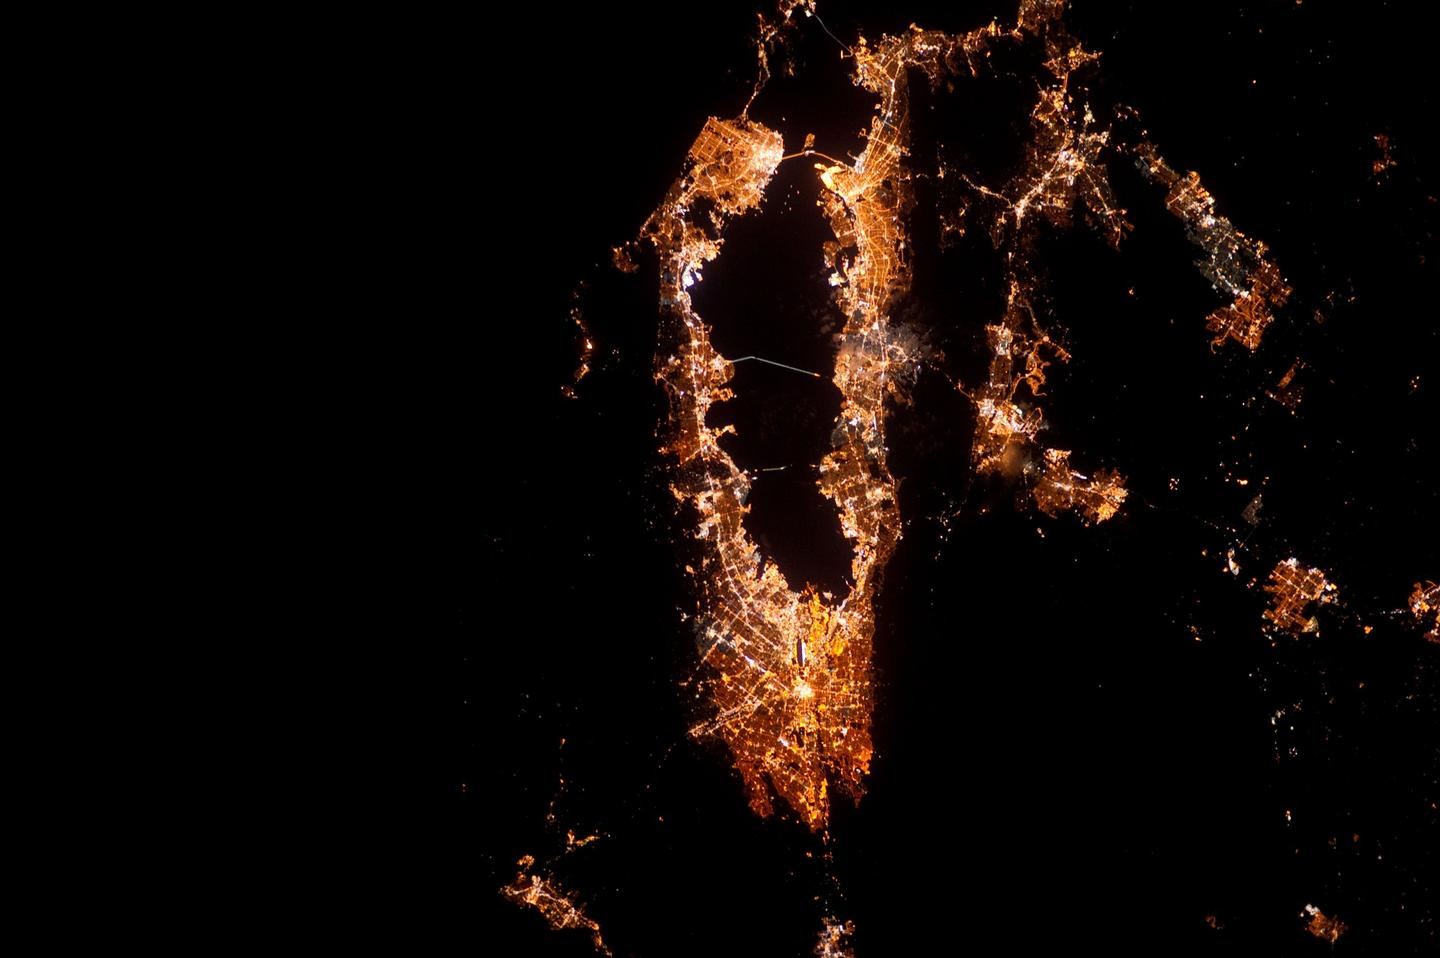 The San Francisco Bay Area snapped at night from the ISS in 2012 (Image: ESA/NASA)